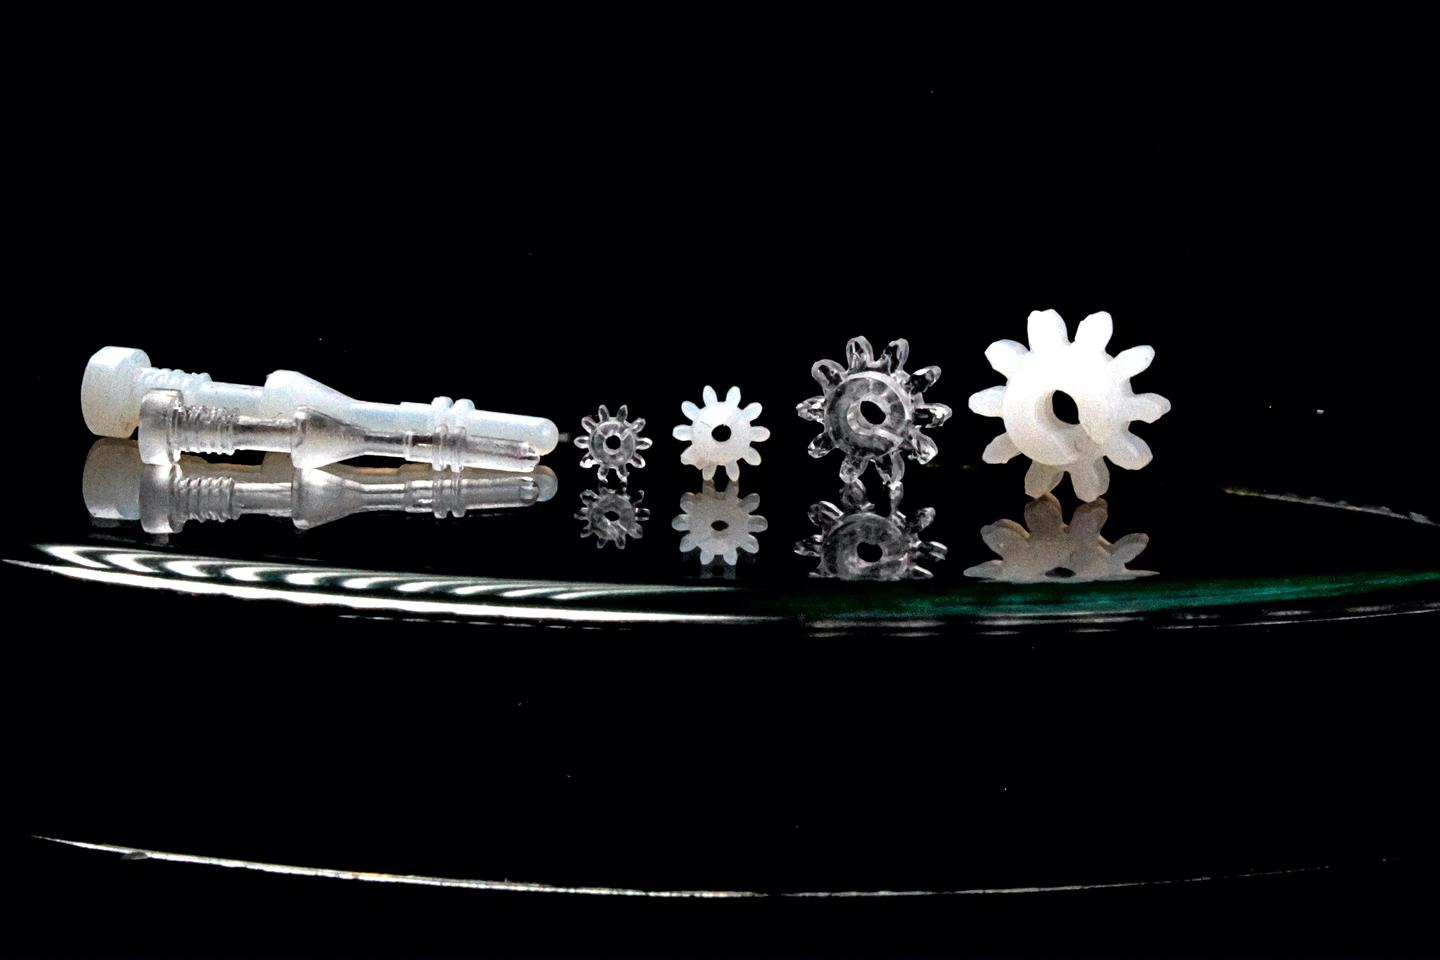 Examples of objects made using the new process, in their initial polymer (white) and final quartz glass (clear) forms